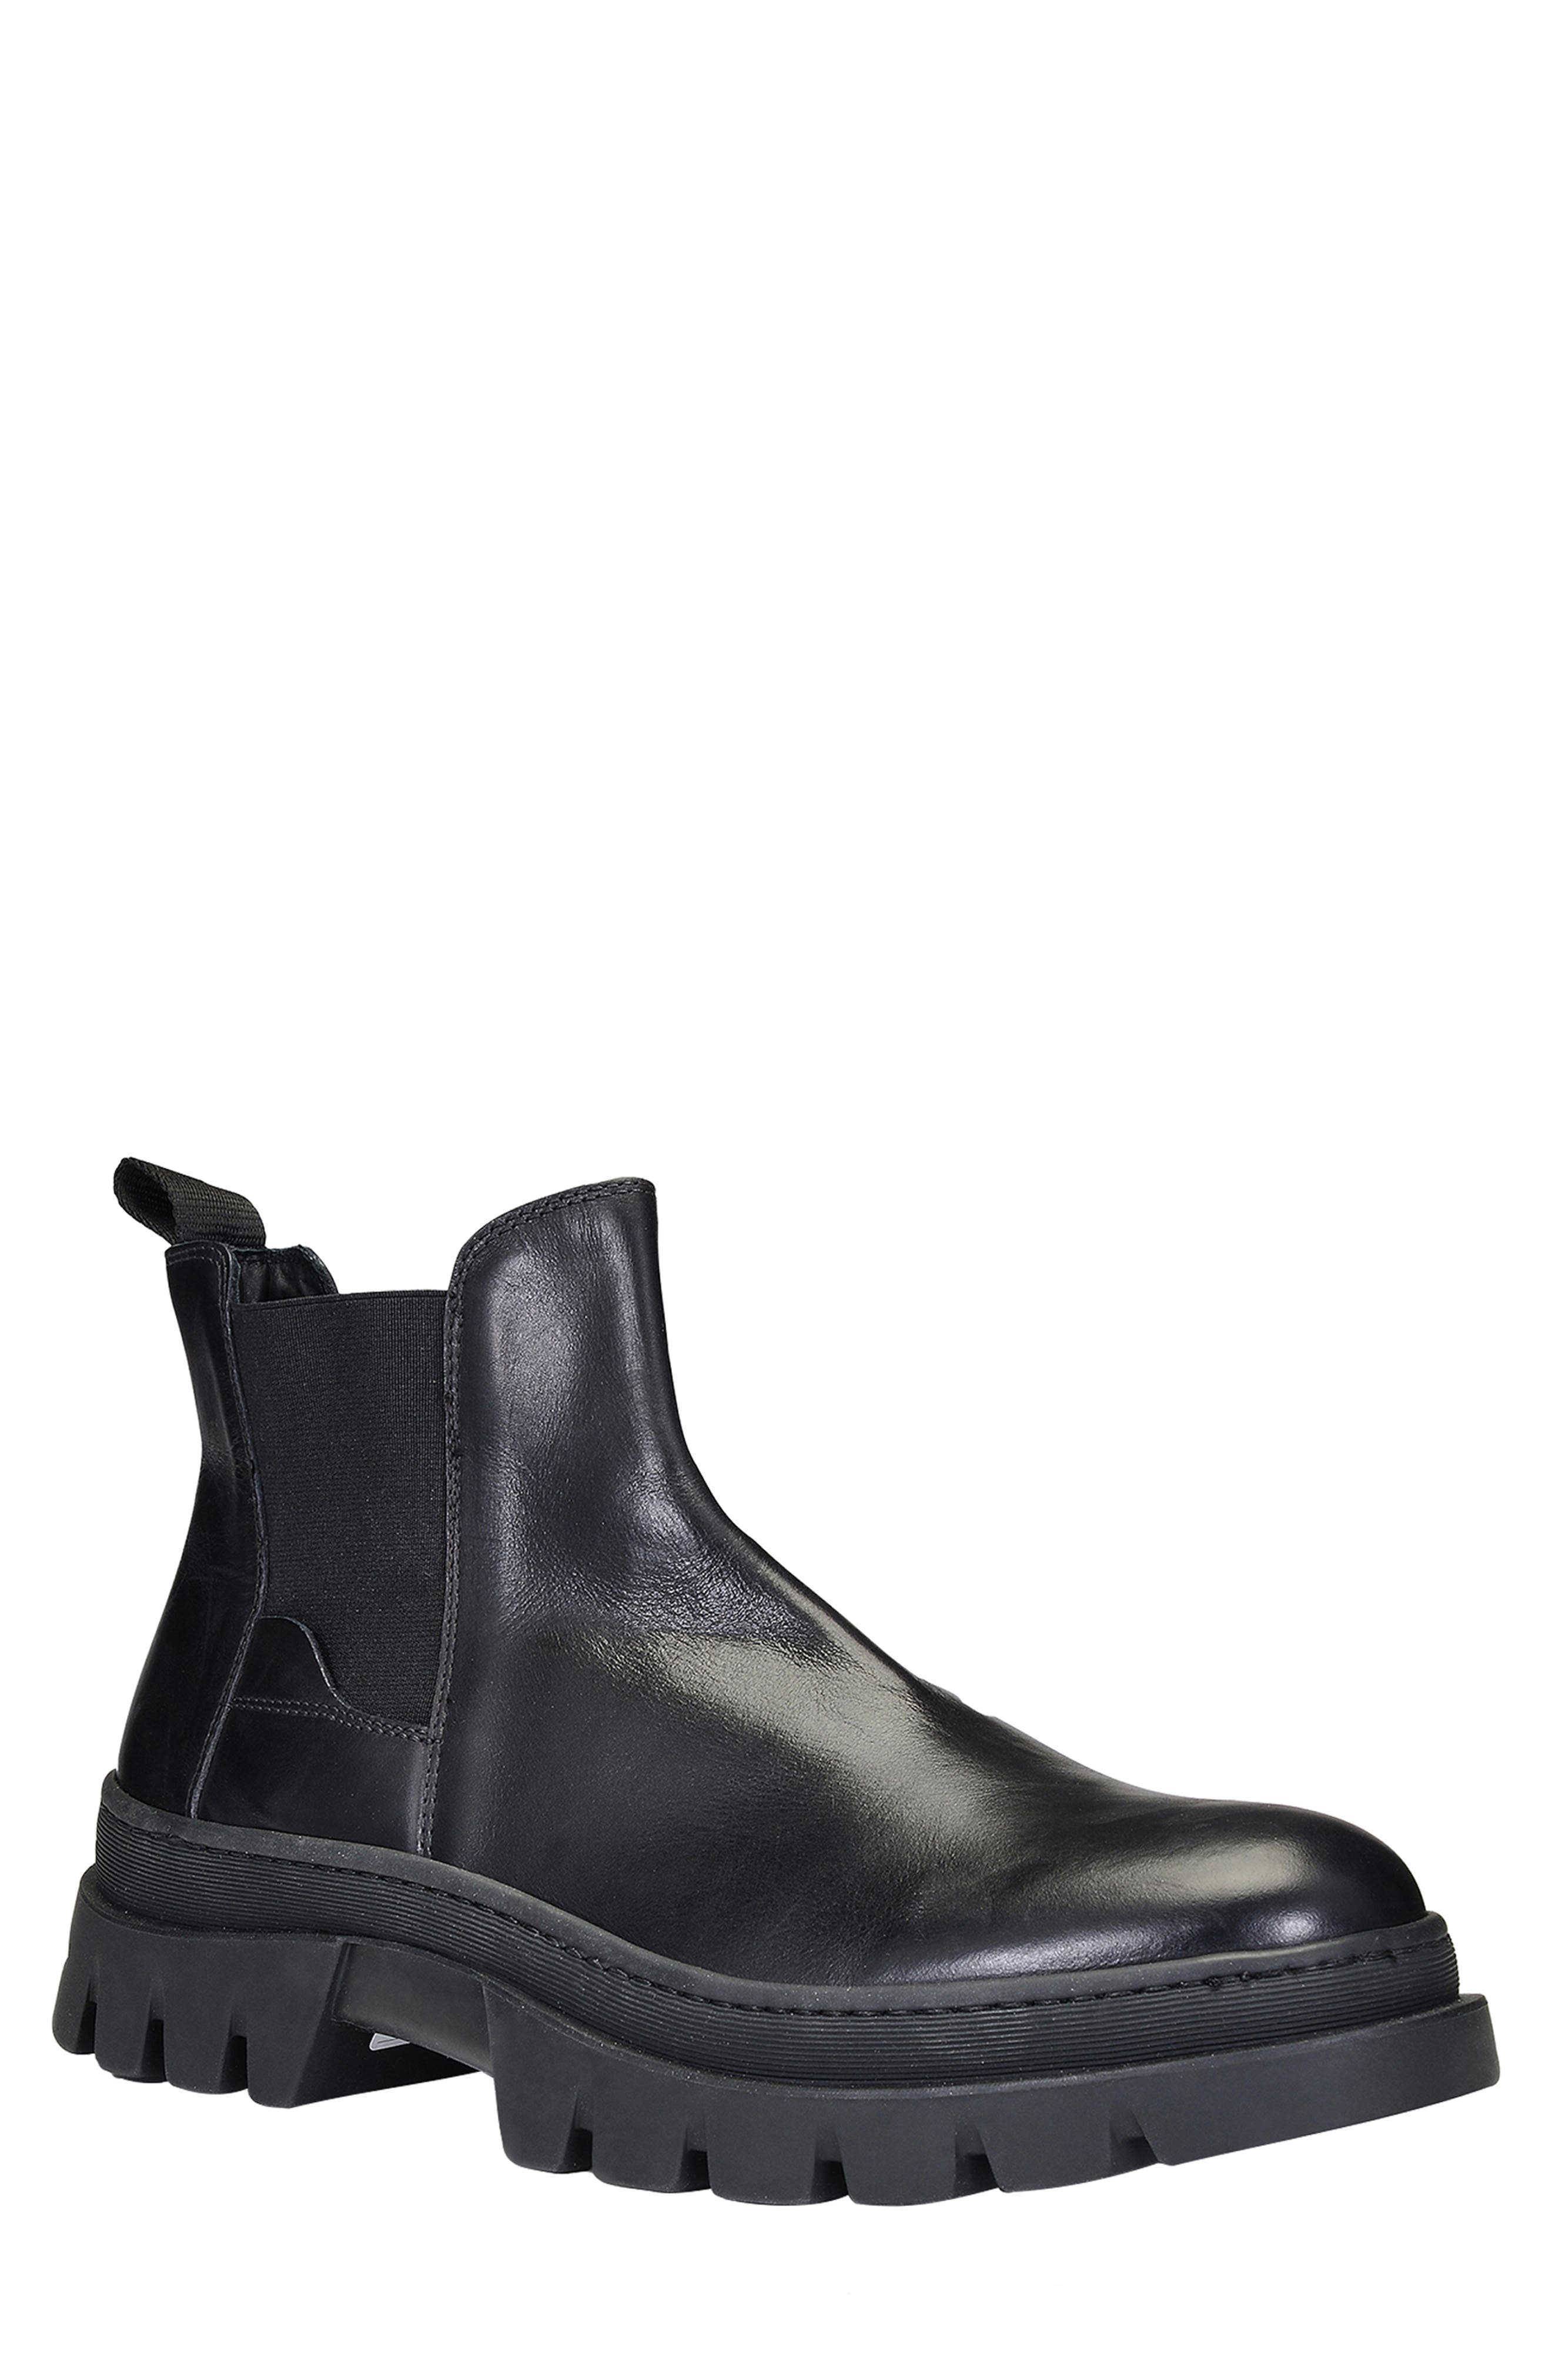 Anderson Chelsea Boot